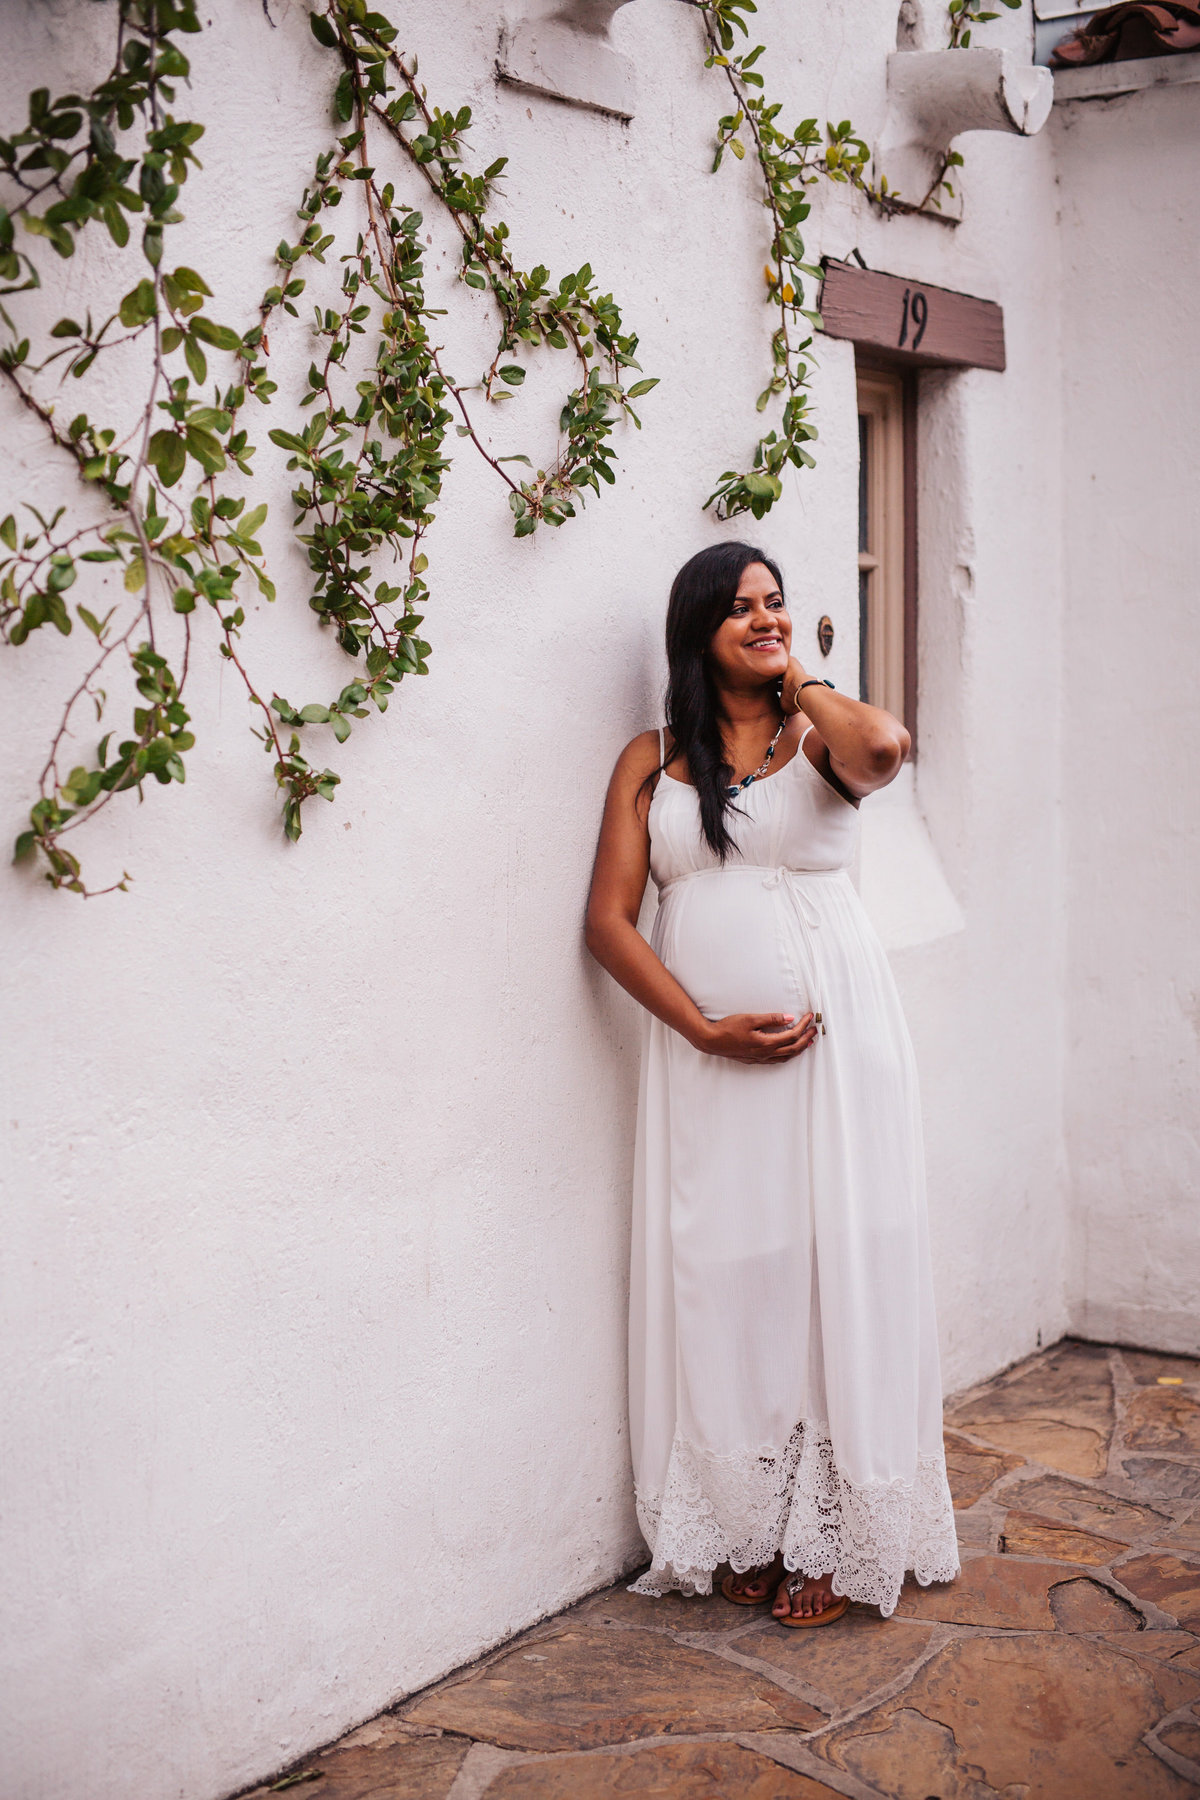 Pregnant woman wearing maternity dress and leaning on wall for her photography shoot.